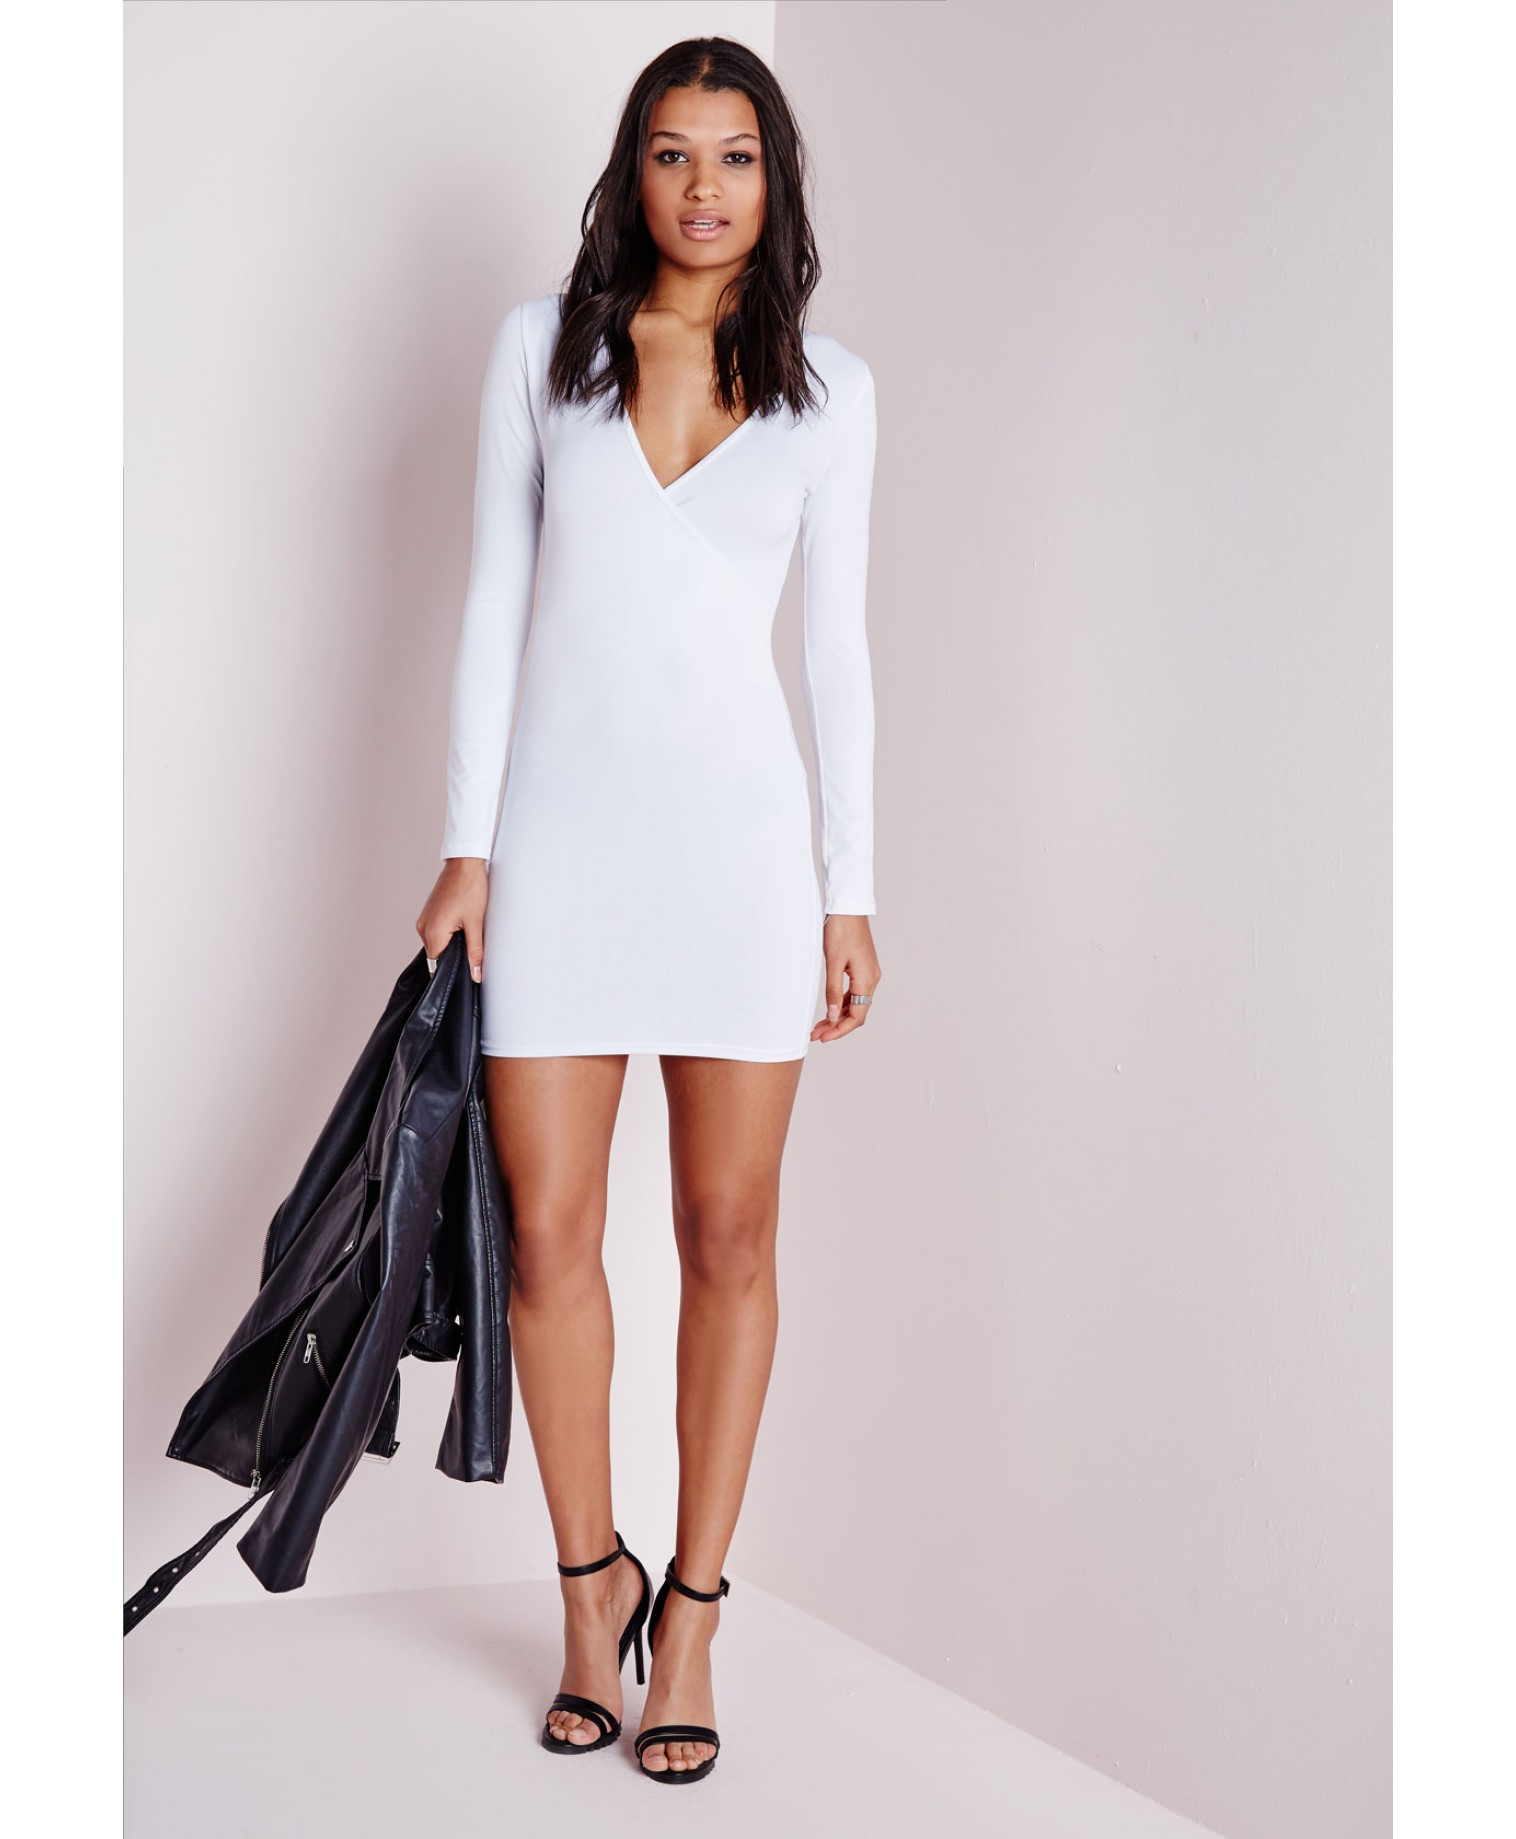 55b212bacc27 Lyst - Missguided Long Sleeve Wrap Bodycon Dress White in White